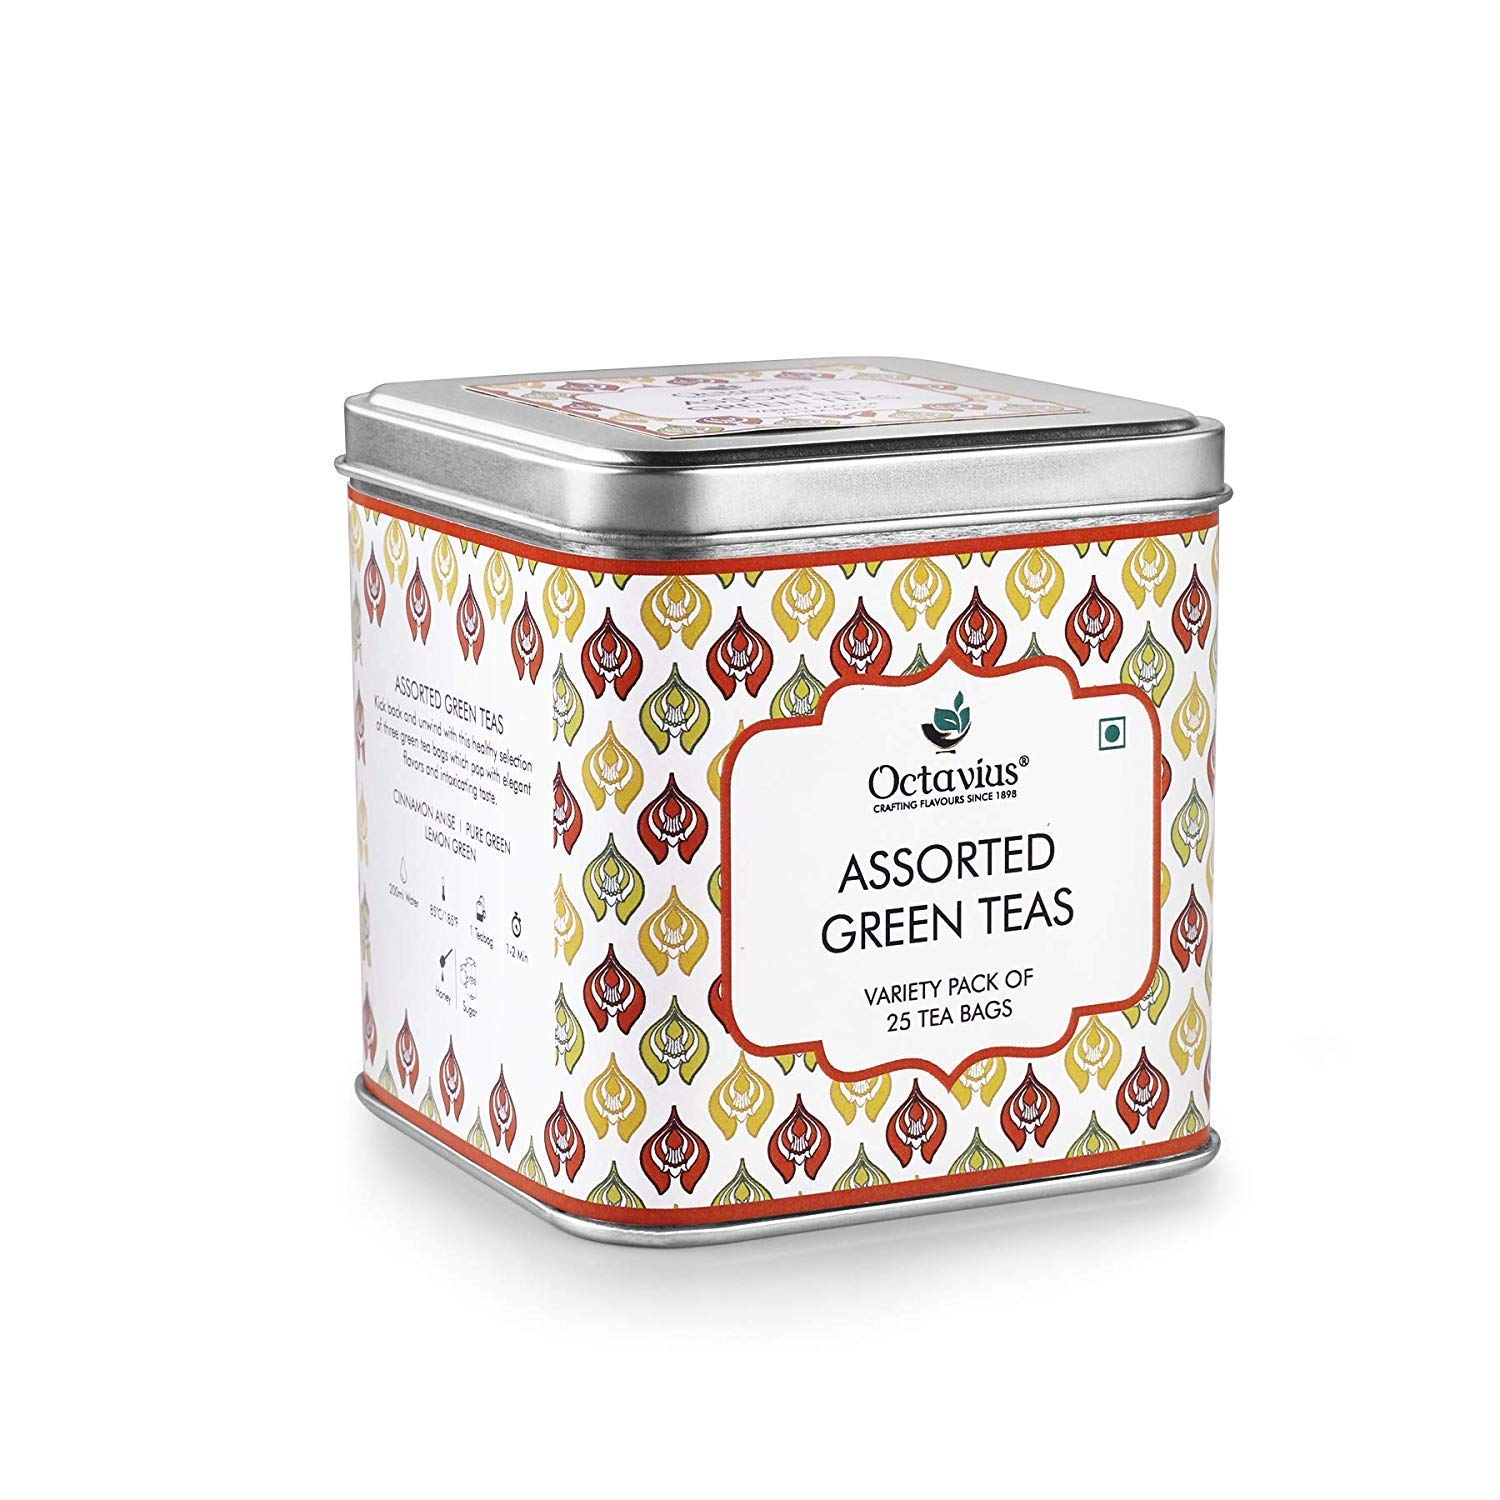 Octavius Assorted Green Teas | Variety Pack of 25 Tea Bags in Gift Box, 3 Assorted Tea Flavors in Green Teas | Pure Green| Lemon Green | Cinnamon Anis